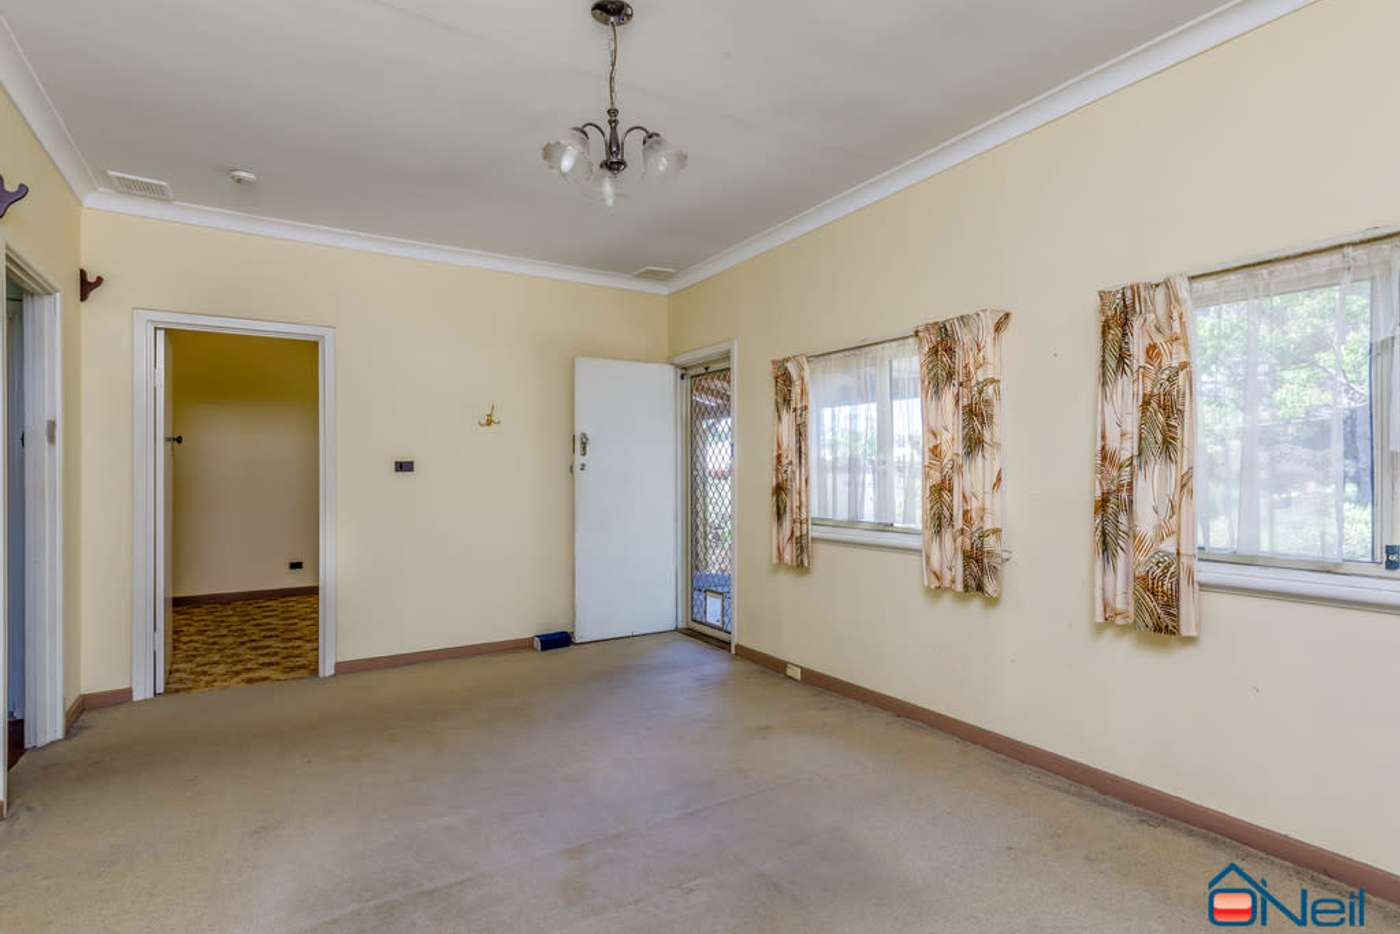 Sixth view of Homely house listing, 22 George Street, Jarrahdale WA 6124